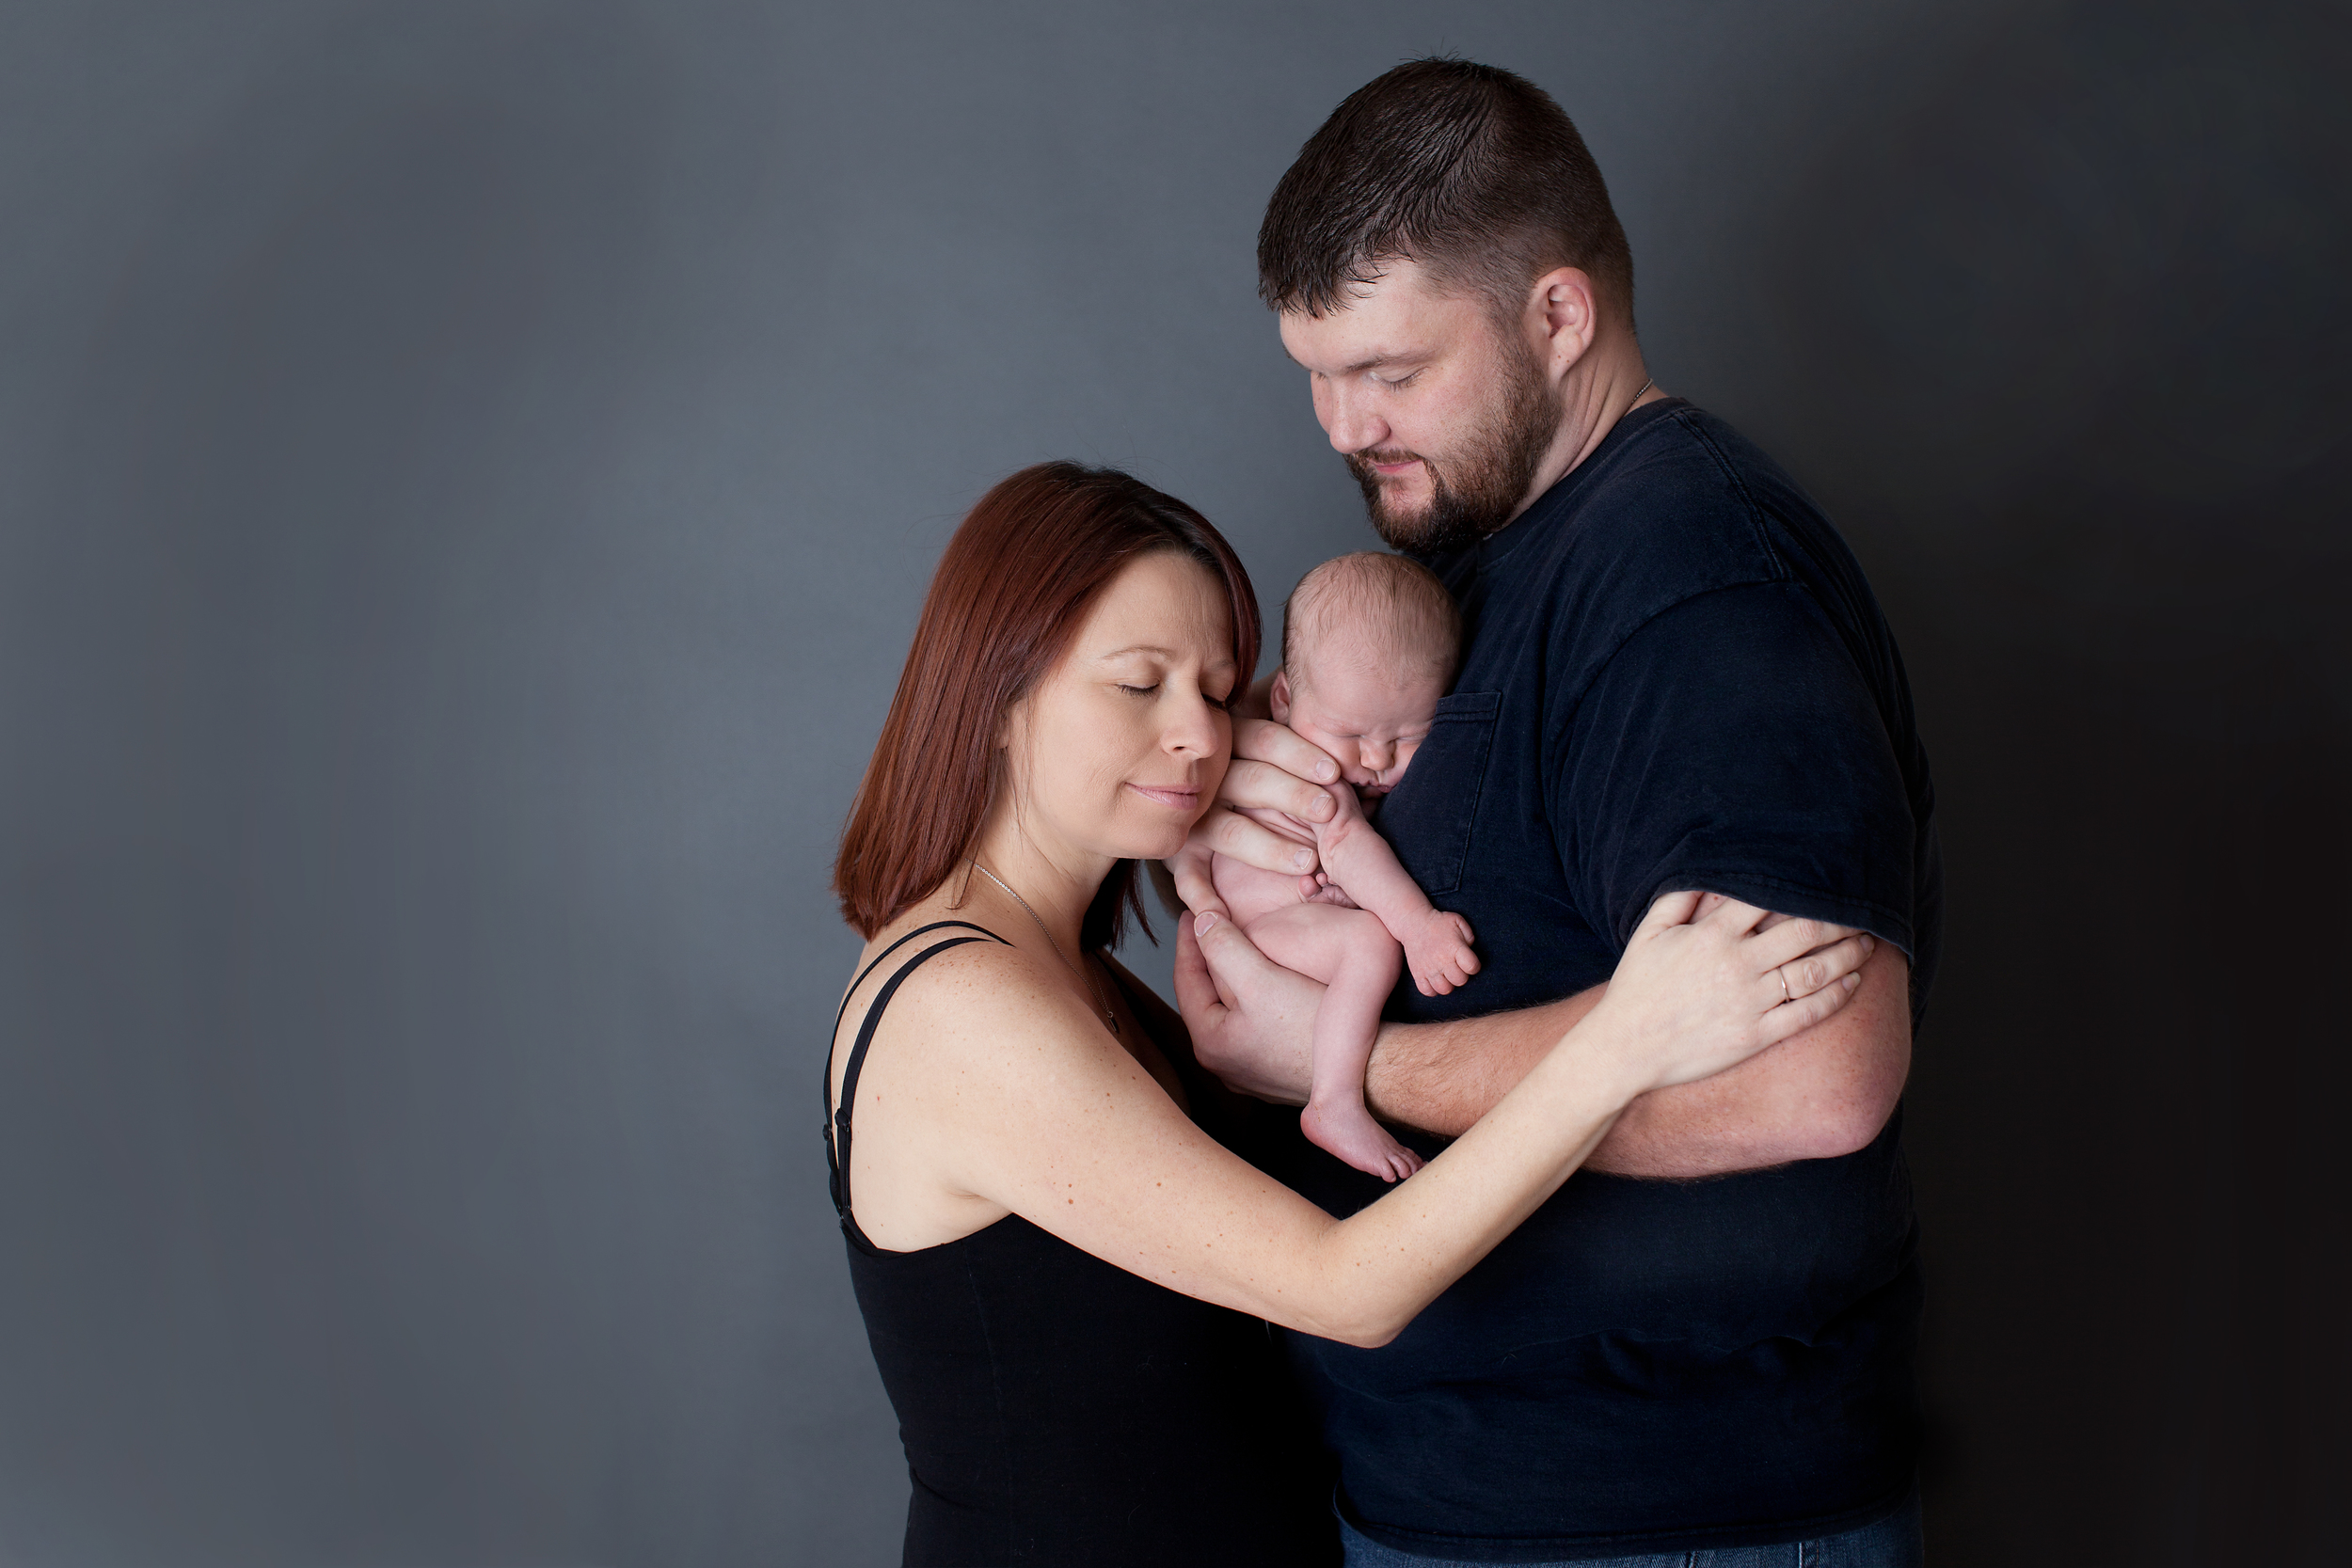 Columbus Ohio professional portrait photographer. Newborn baby photography. Mother and Father with infant son at Studio.